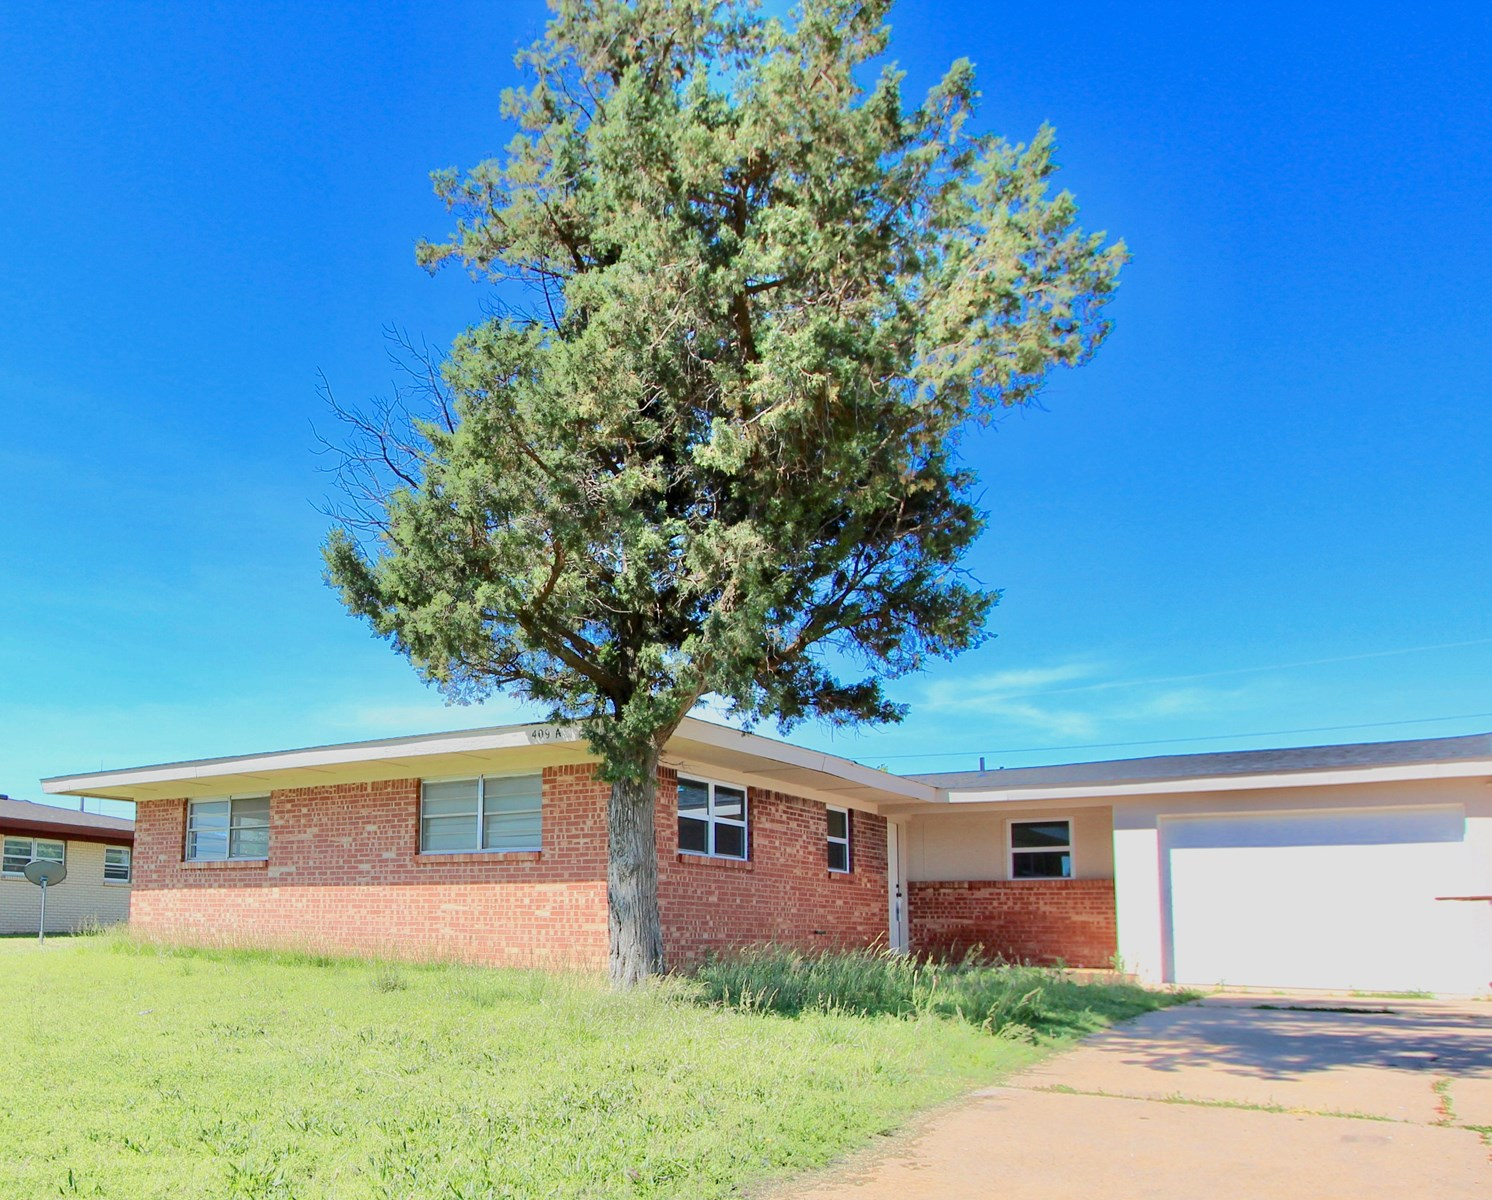 DUPLEX HALF FOR SALE IN WESTERN OKLAHOMA/HOME OR INVESTMENT